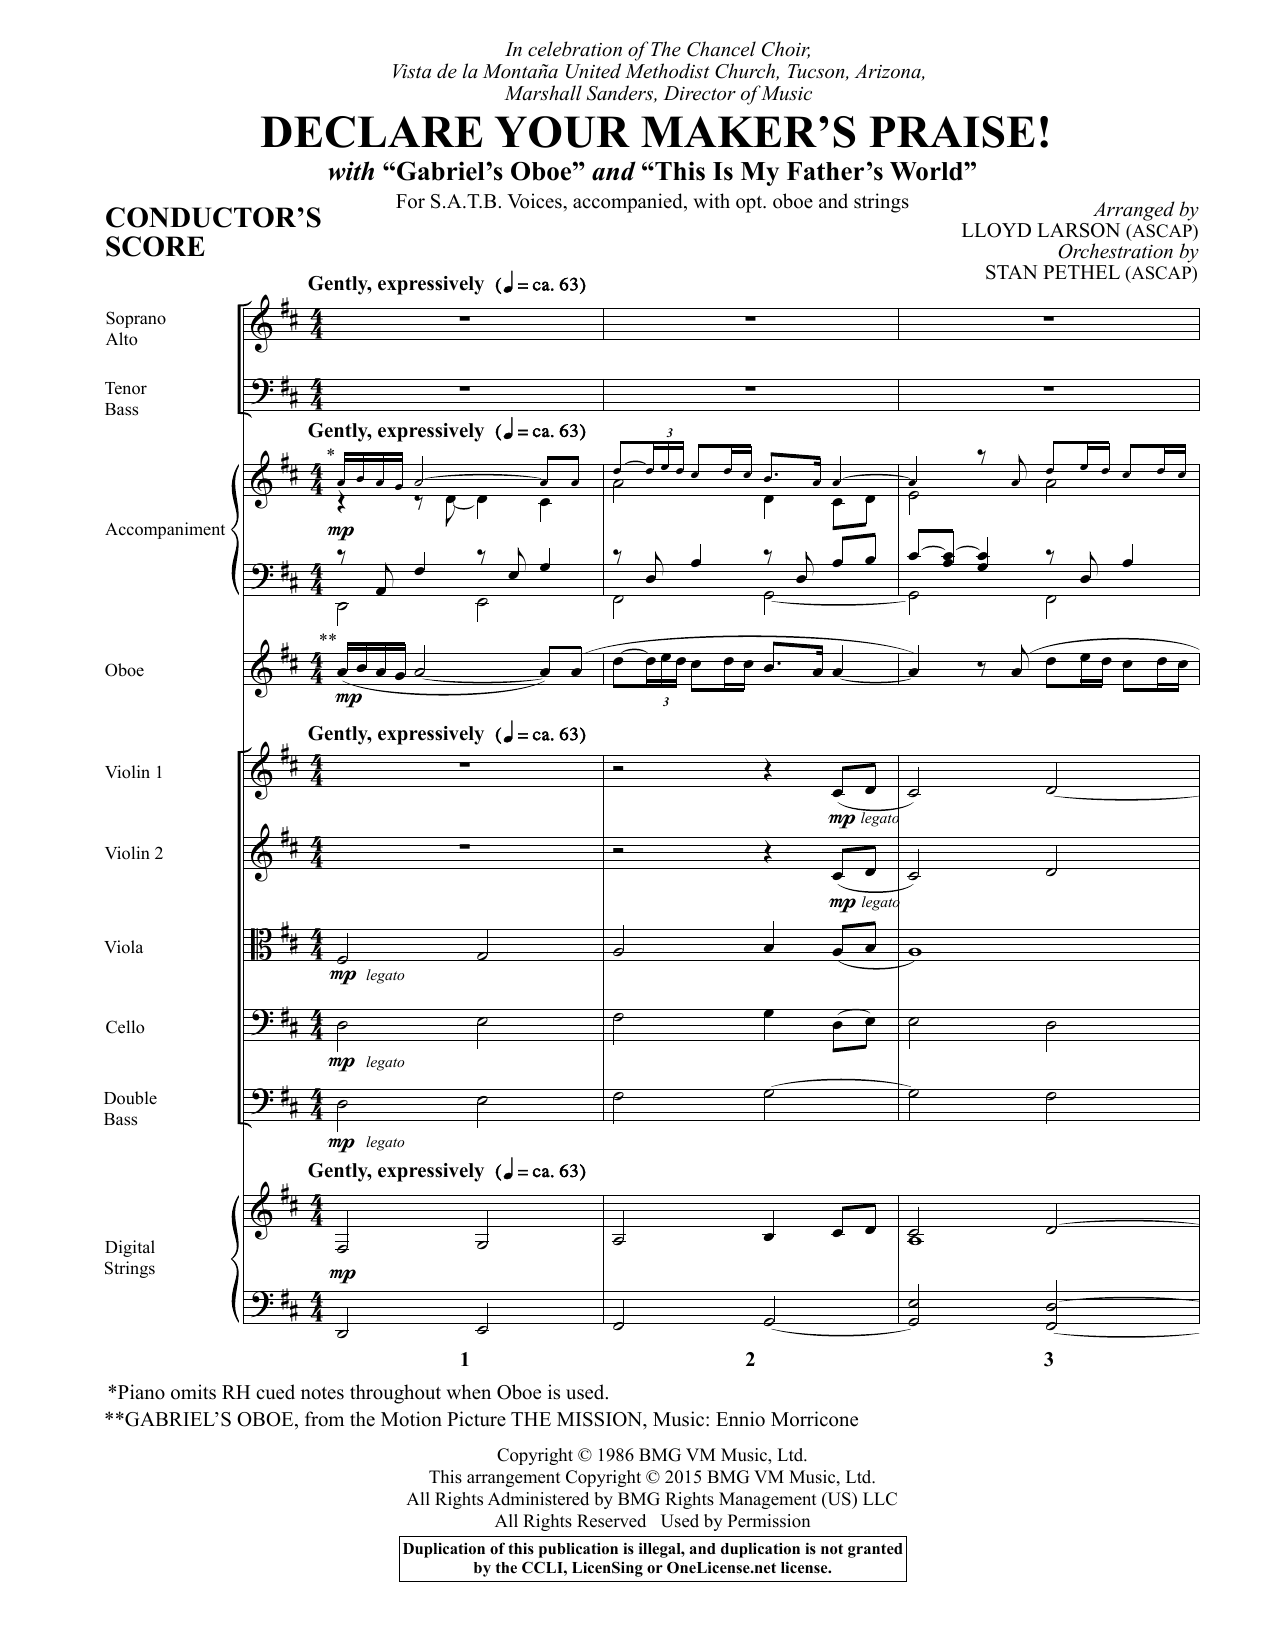 Declare Your Maker's Praise! (COMPLETE) sheet music for orchestra/band by Lloyd Larson